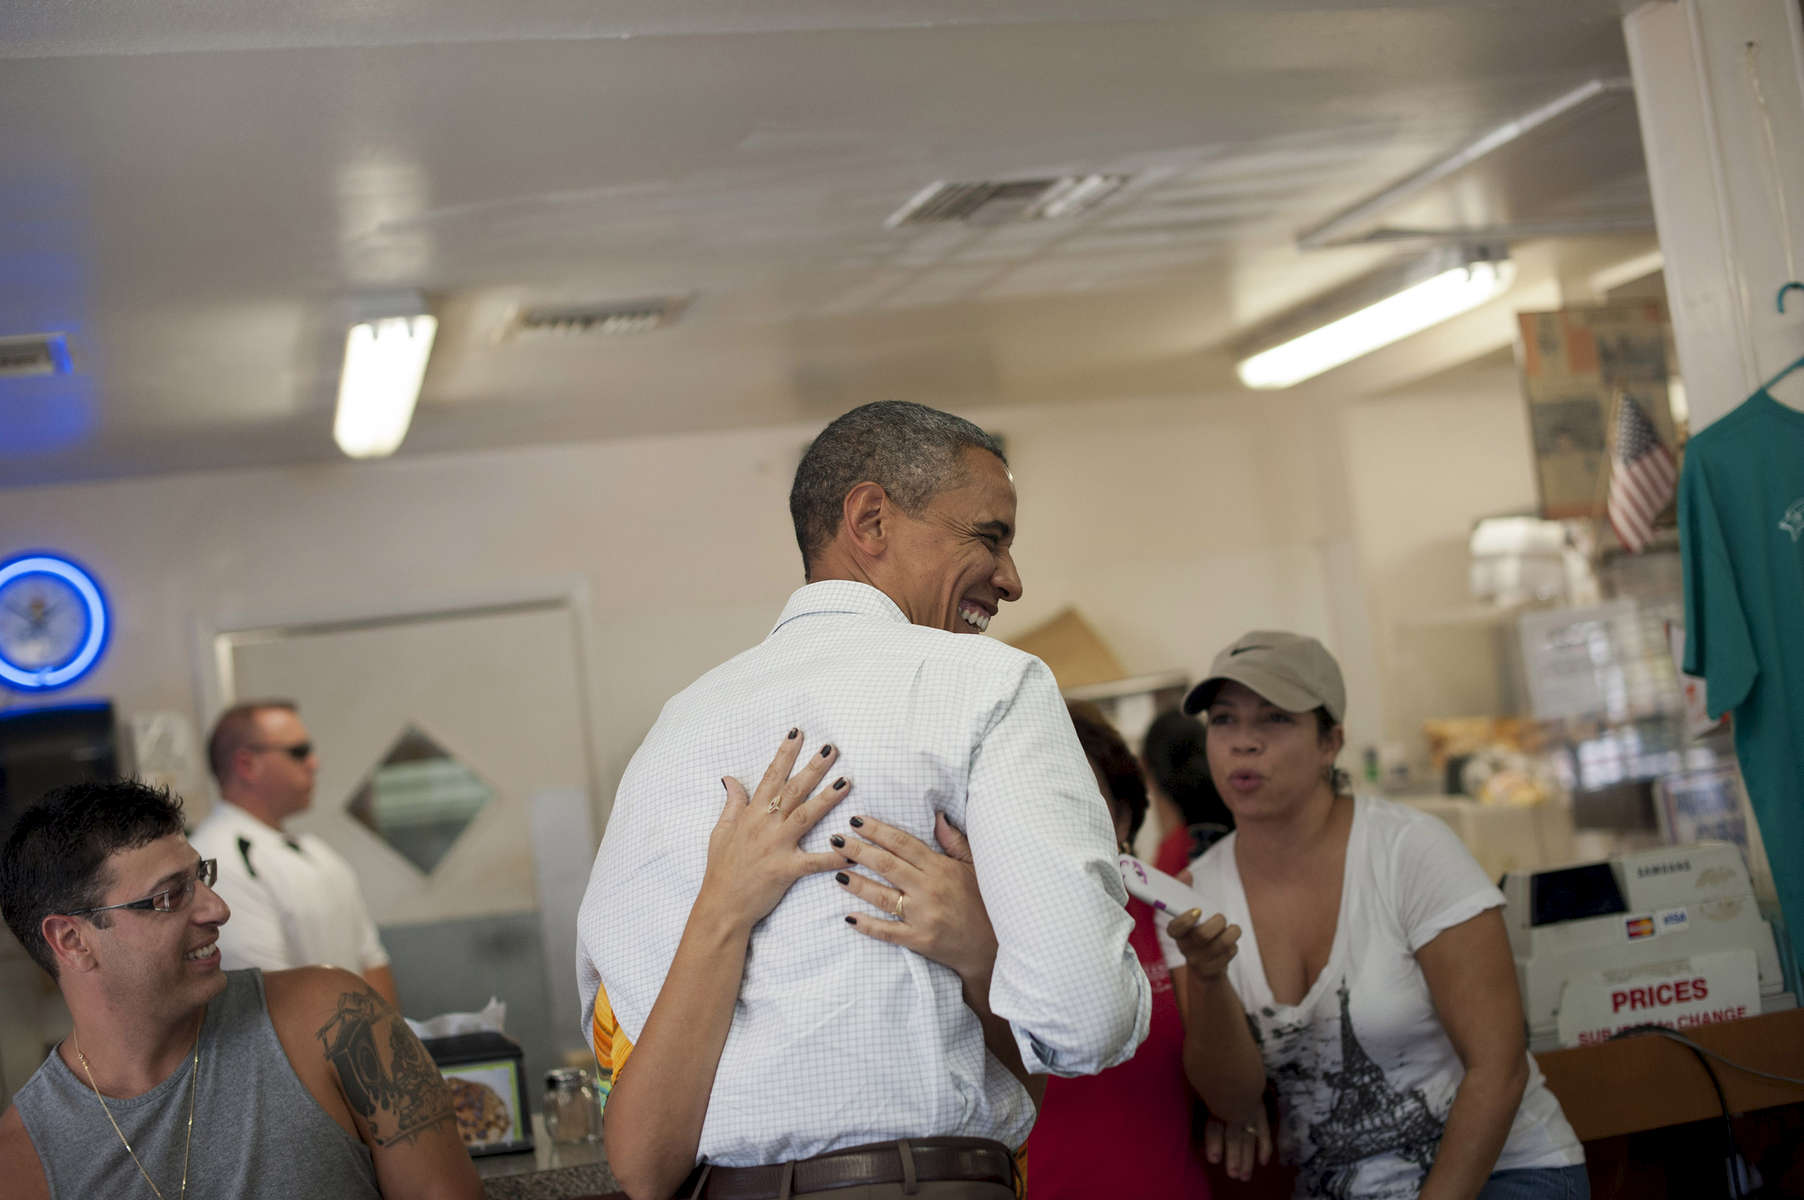 September 8, 2012 - Tampa, FL: A woman at the West Tampa Sandwich Shop and Restaurant in Tampa, FL embraces President Barack Obama during a visit to the shop. (Scout Tufankjian for Obama for America/Polaris)